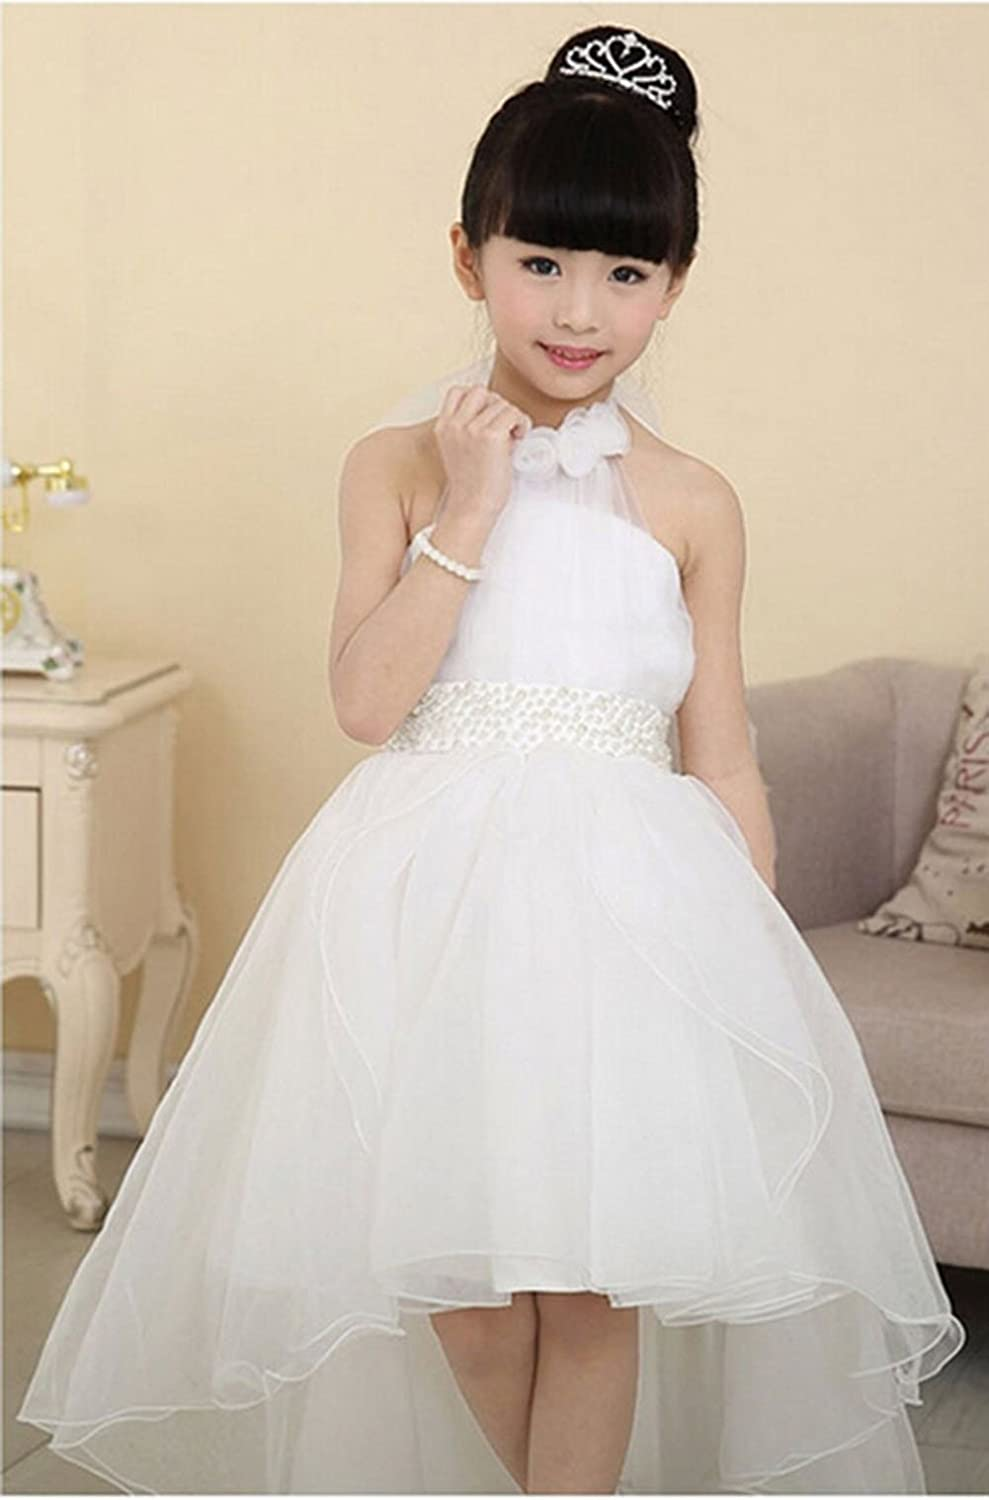 Amazon.com: Mamas-Kiddy Cute Asymmetric Halterneck Solid Mesh Long Tail Flower Girl Dress: Clothing